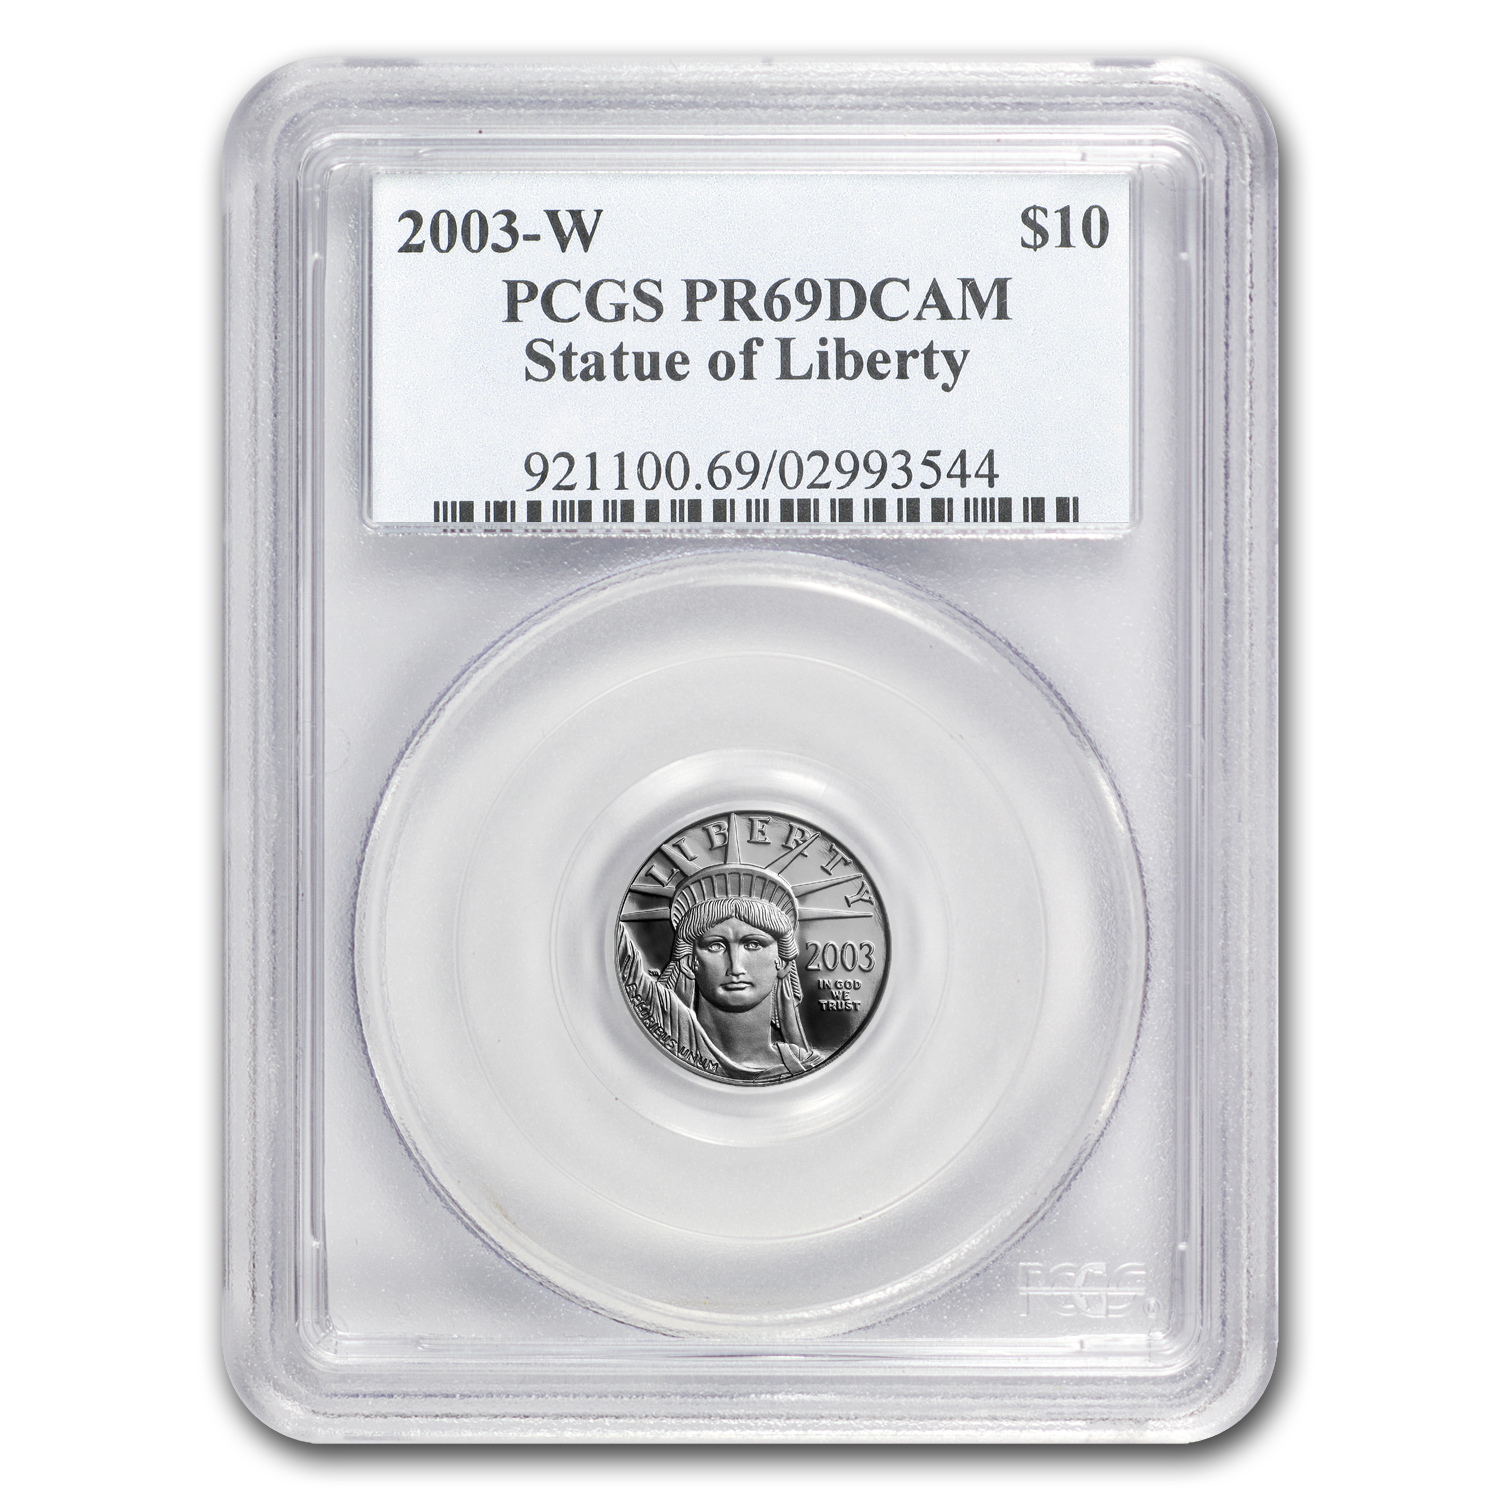 2003-W 1/10 oz Proof Platinum American Eagle PR-69 PCGS